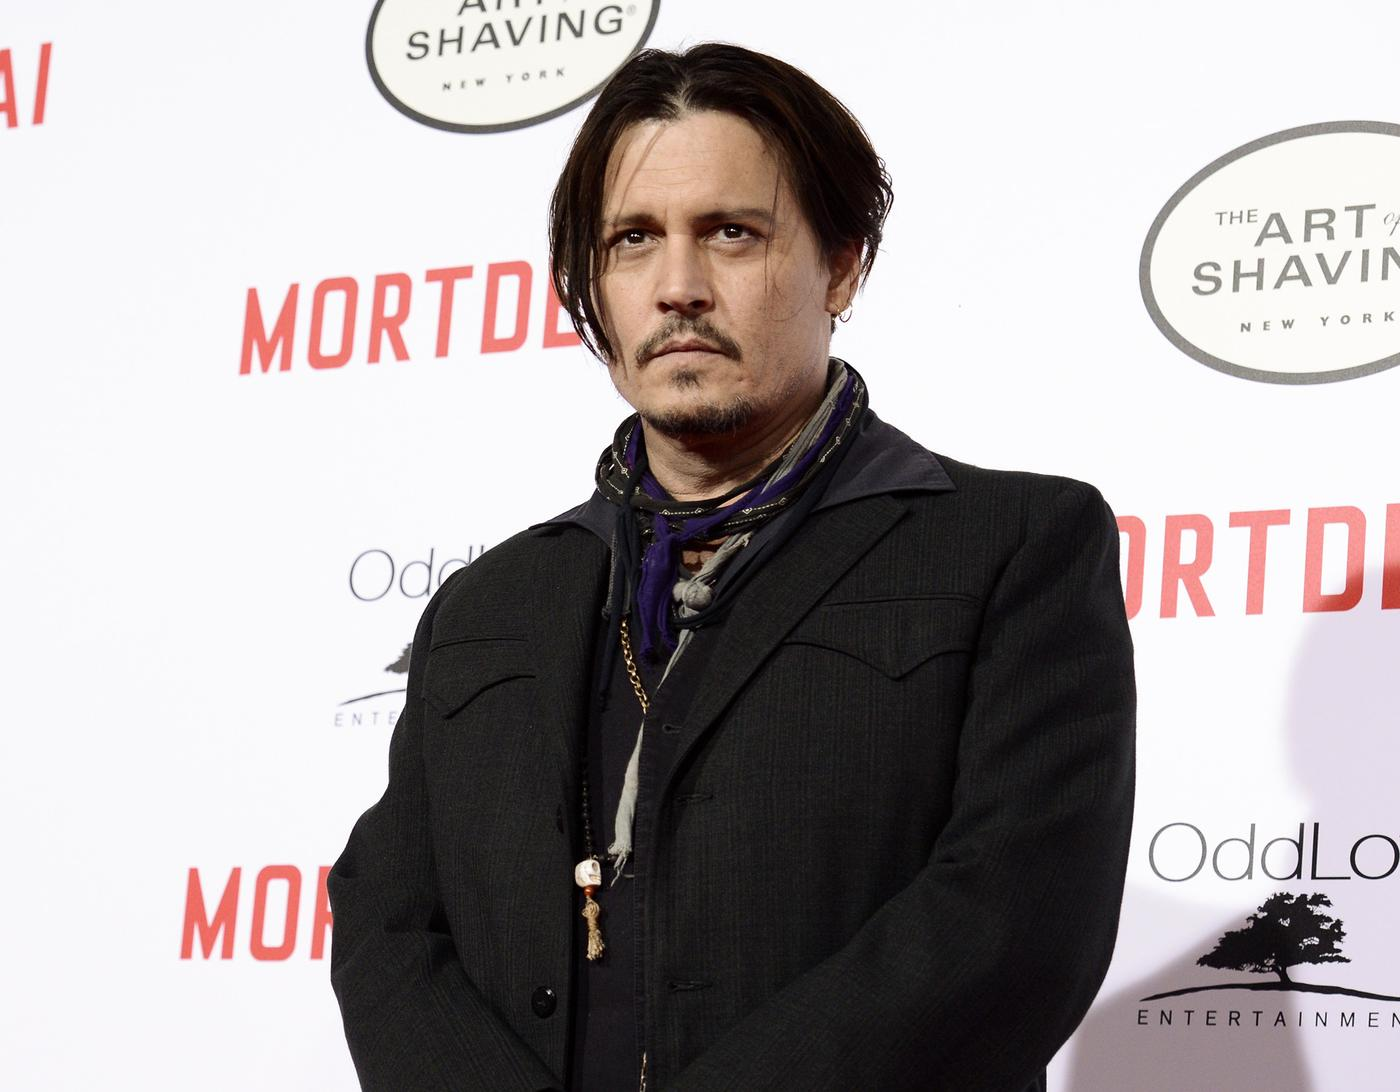 Johnny Depp texts exactly how you think Johnny Depp would text